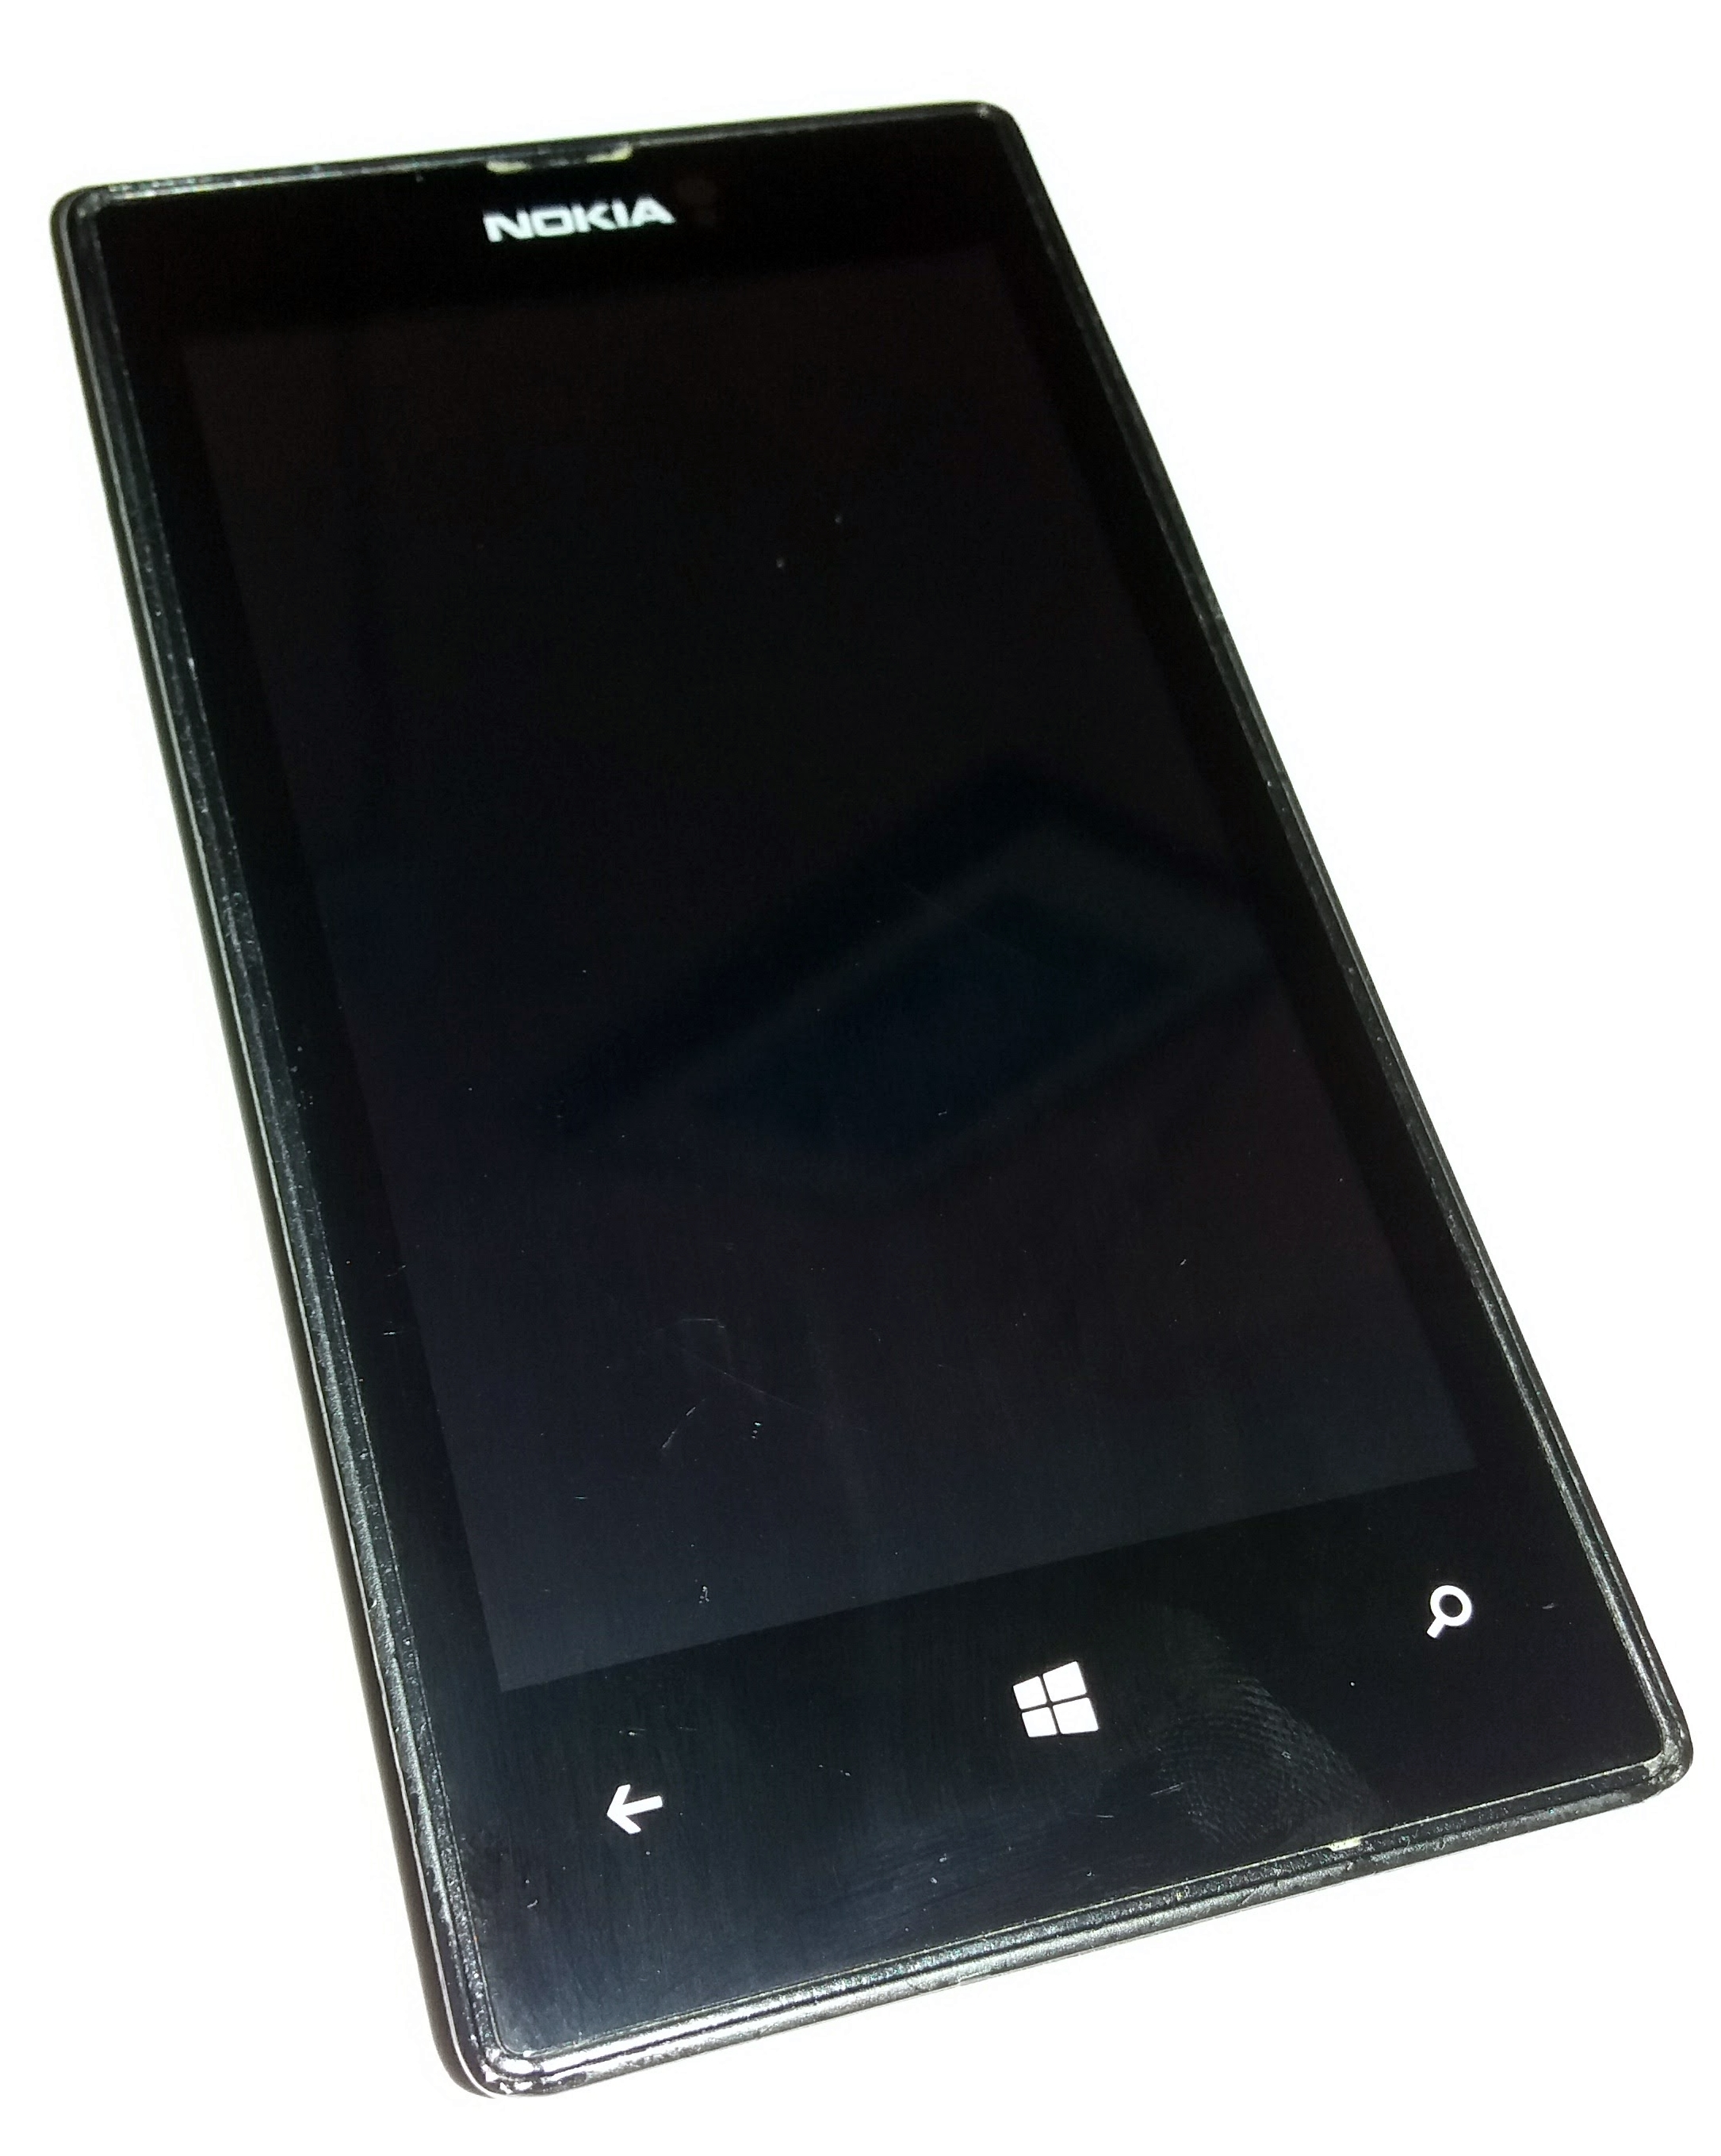 Nokia Lumia 520 - Wikipedia